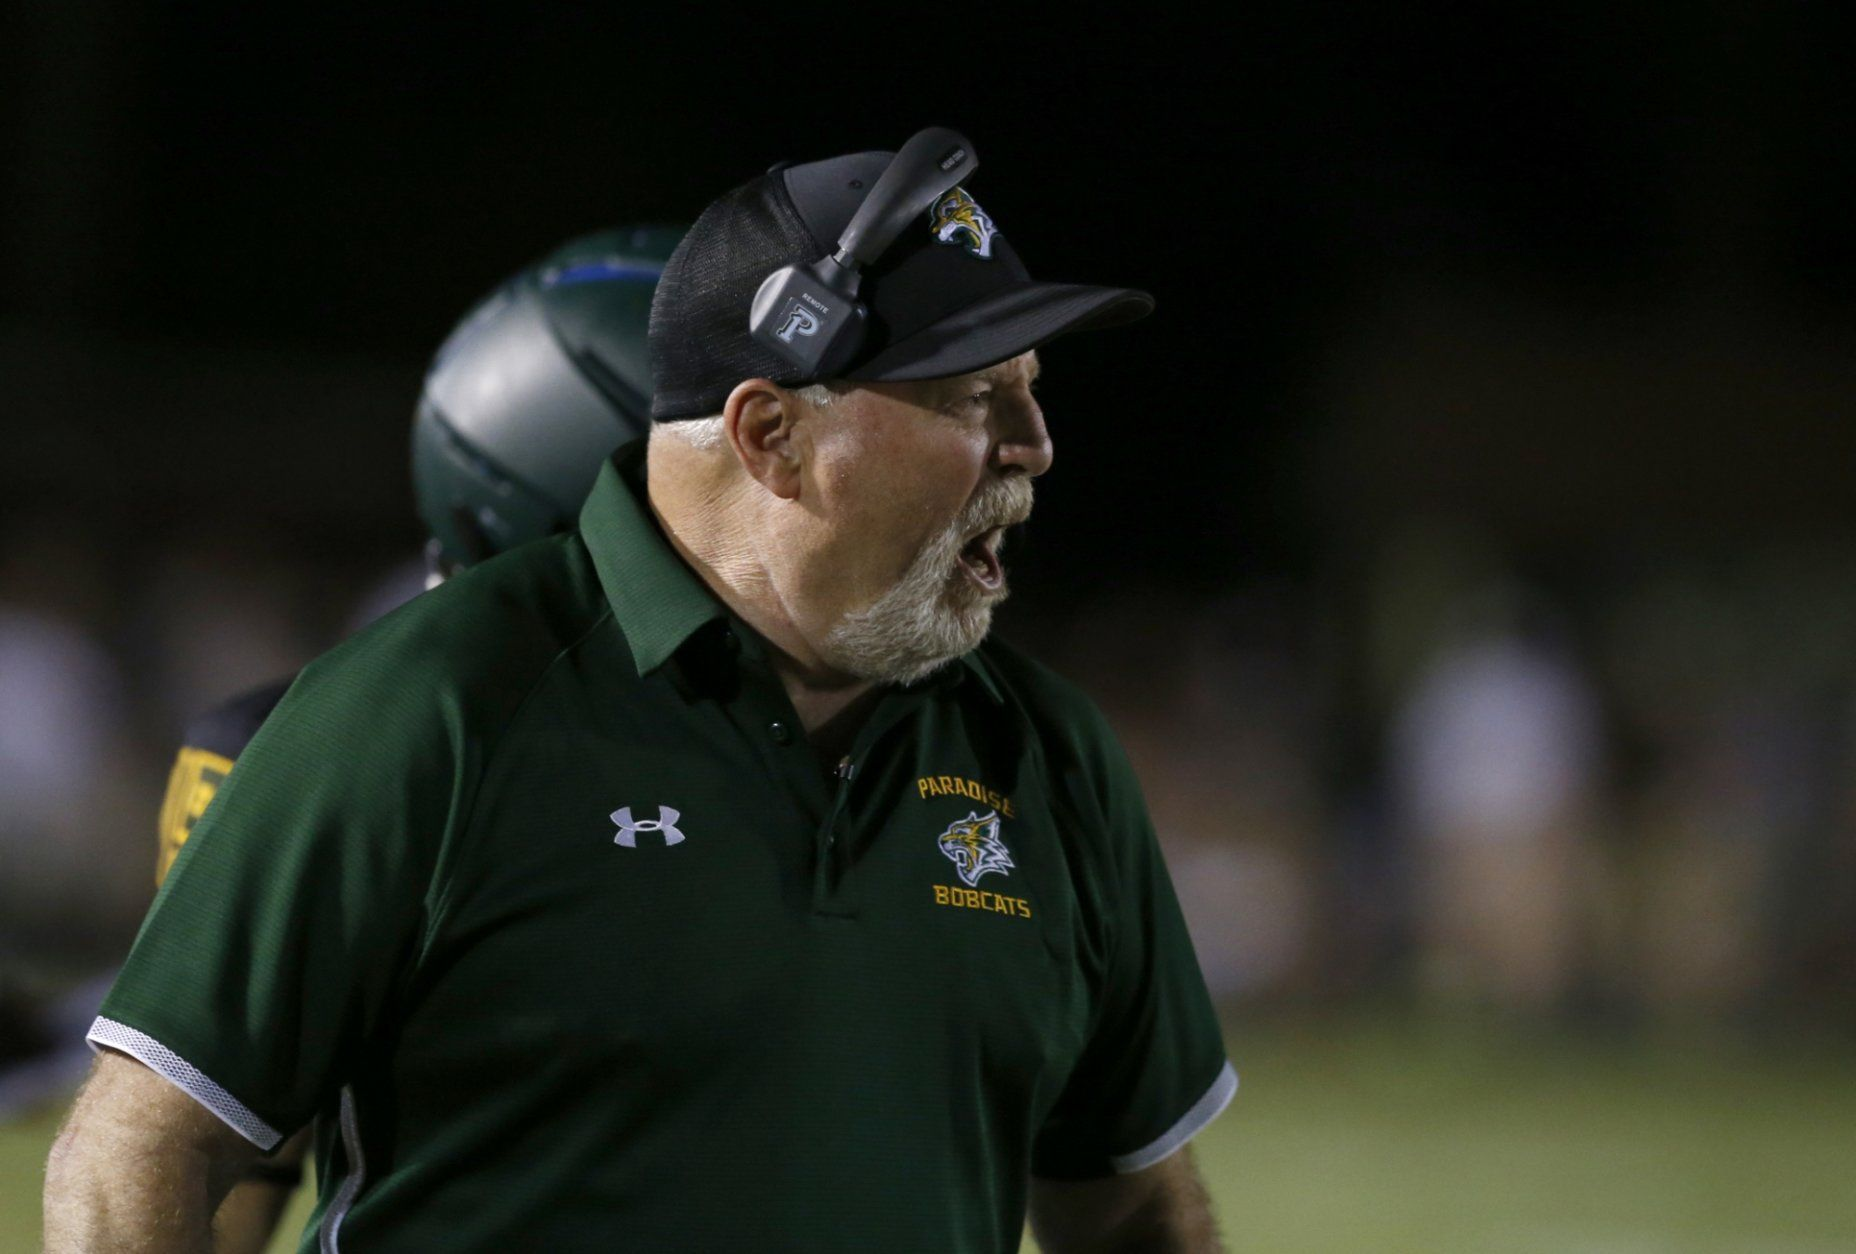 Paradise High School head football coach Rick Prinz calls out instructions to his team during the first half of their game against Williams High School in Paradise, Calif., Friday, Aug. 23, 2019. This was the first game for the school since a wildfire last year that killed dozens and destroyed nearly 19,000 buildings including the homes of most of the players. Paradise won 42-0. (AP Photo/Rich Pedroncelli)